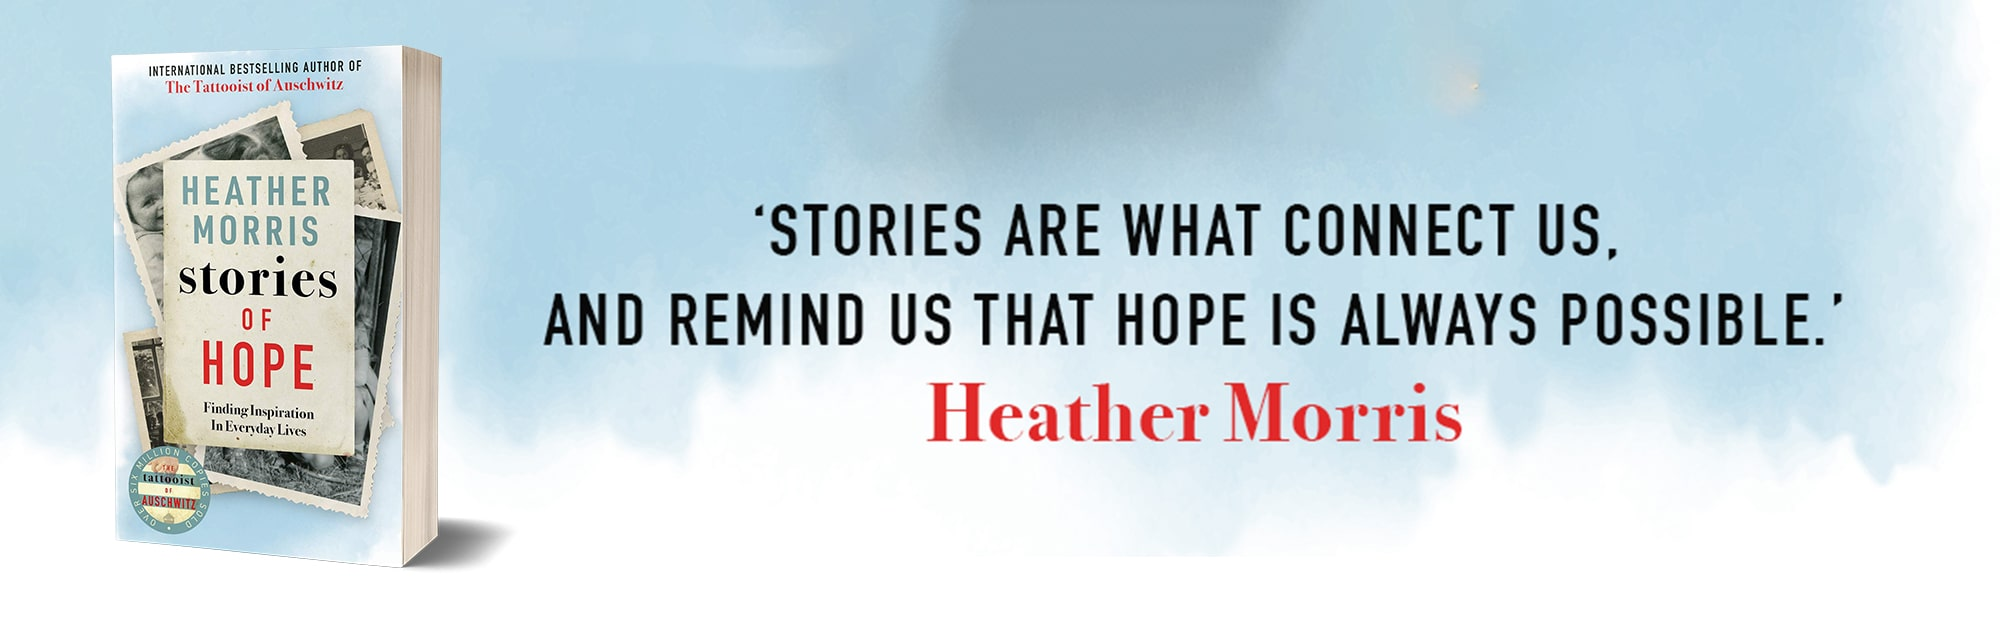 SEPT 2020 Stories of Hope